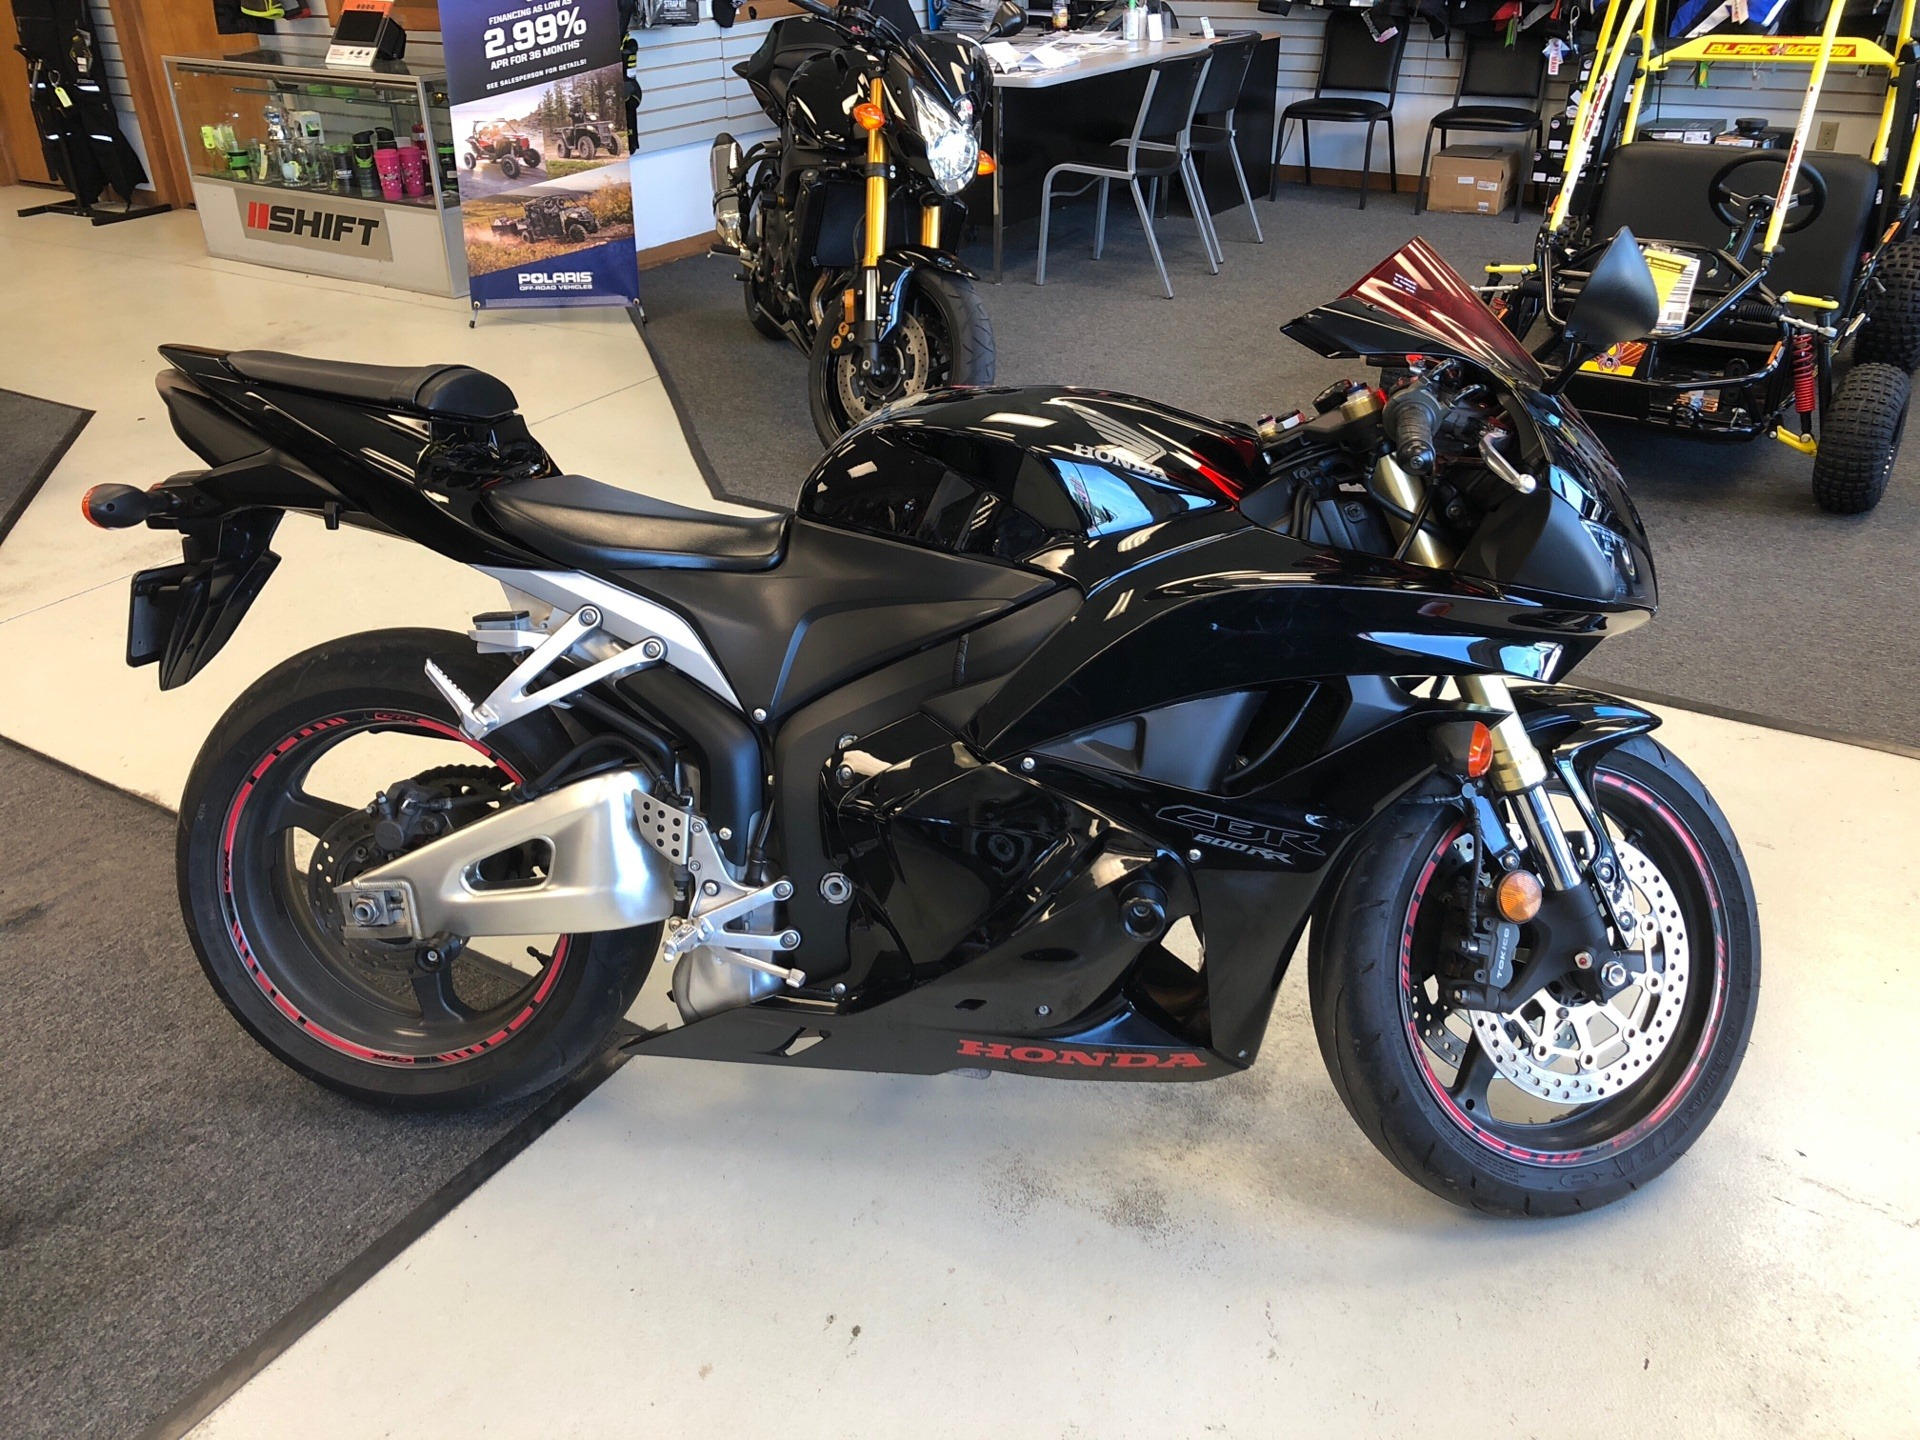 Used 2012 Honda Cbr600rr Motorcycles In Elkhart In Stock Number